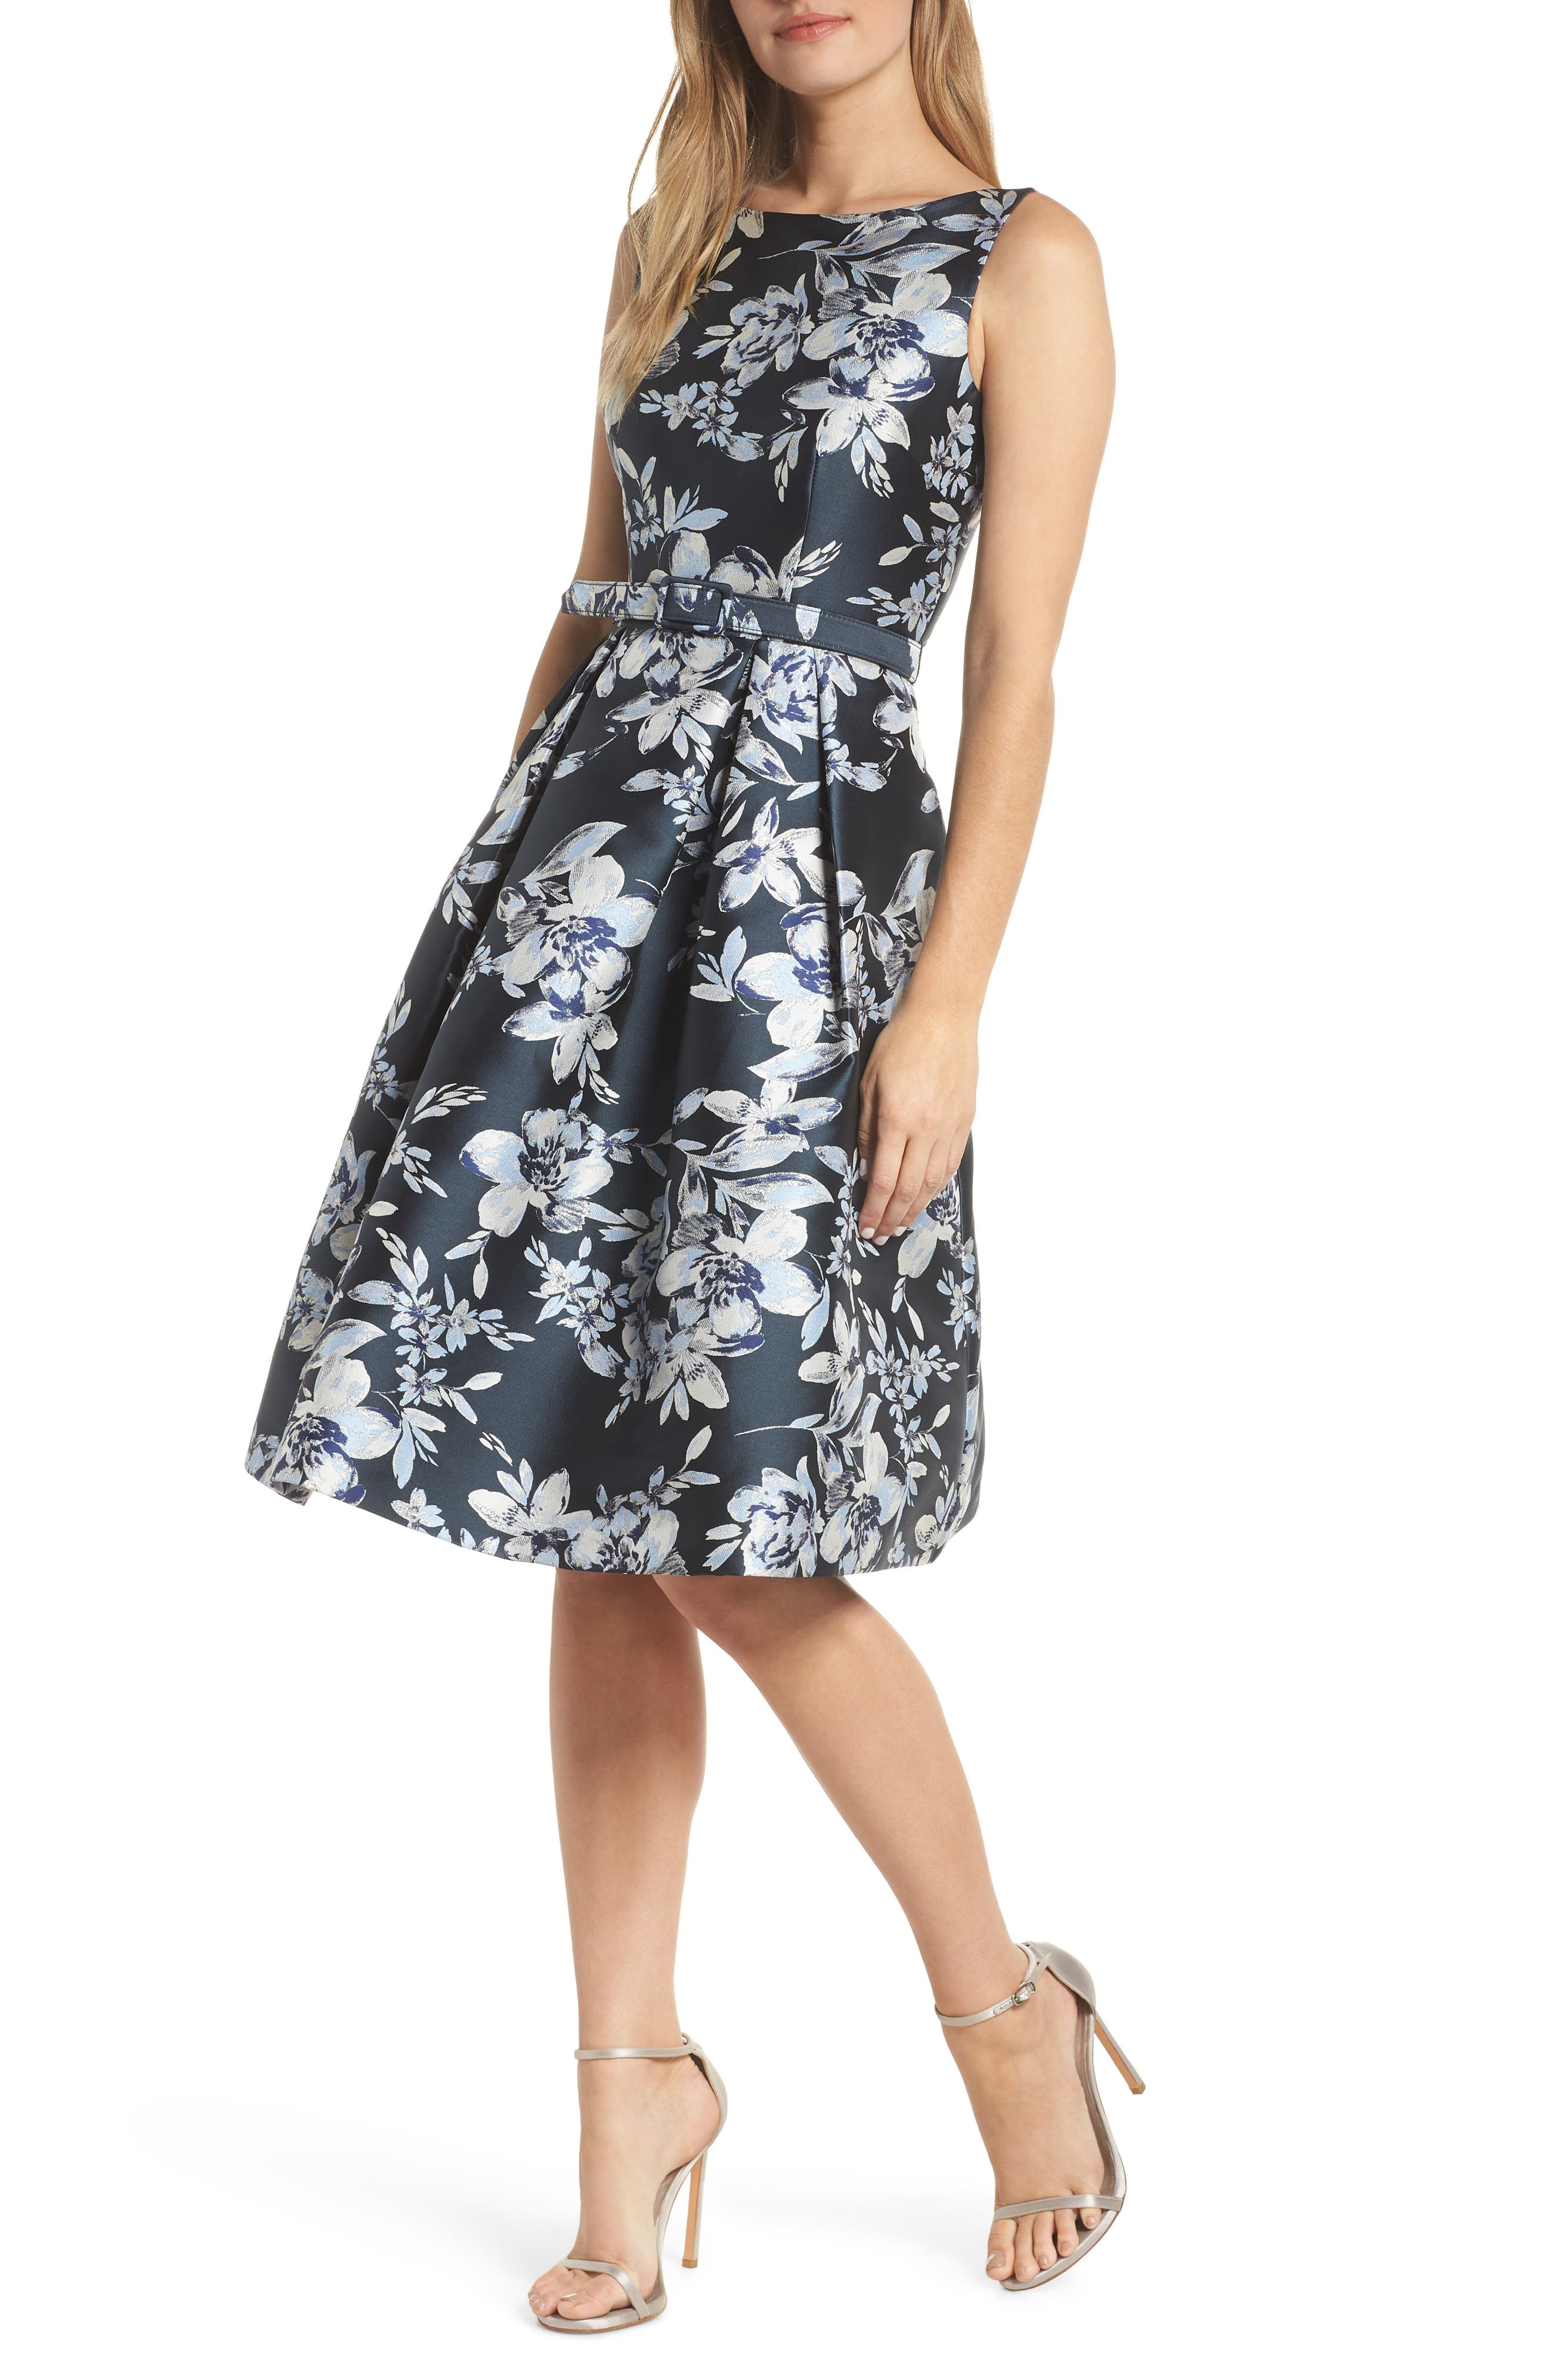 ELIZA J, Metallic Floral Belted Fit & Flare Dress, Main thumbnail 1, color, NAVY